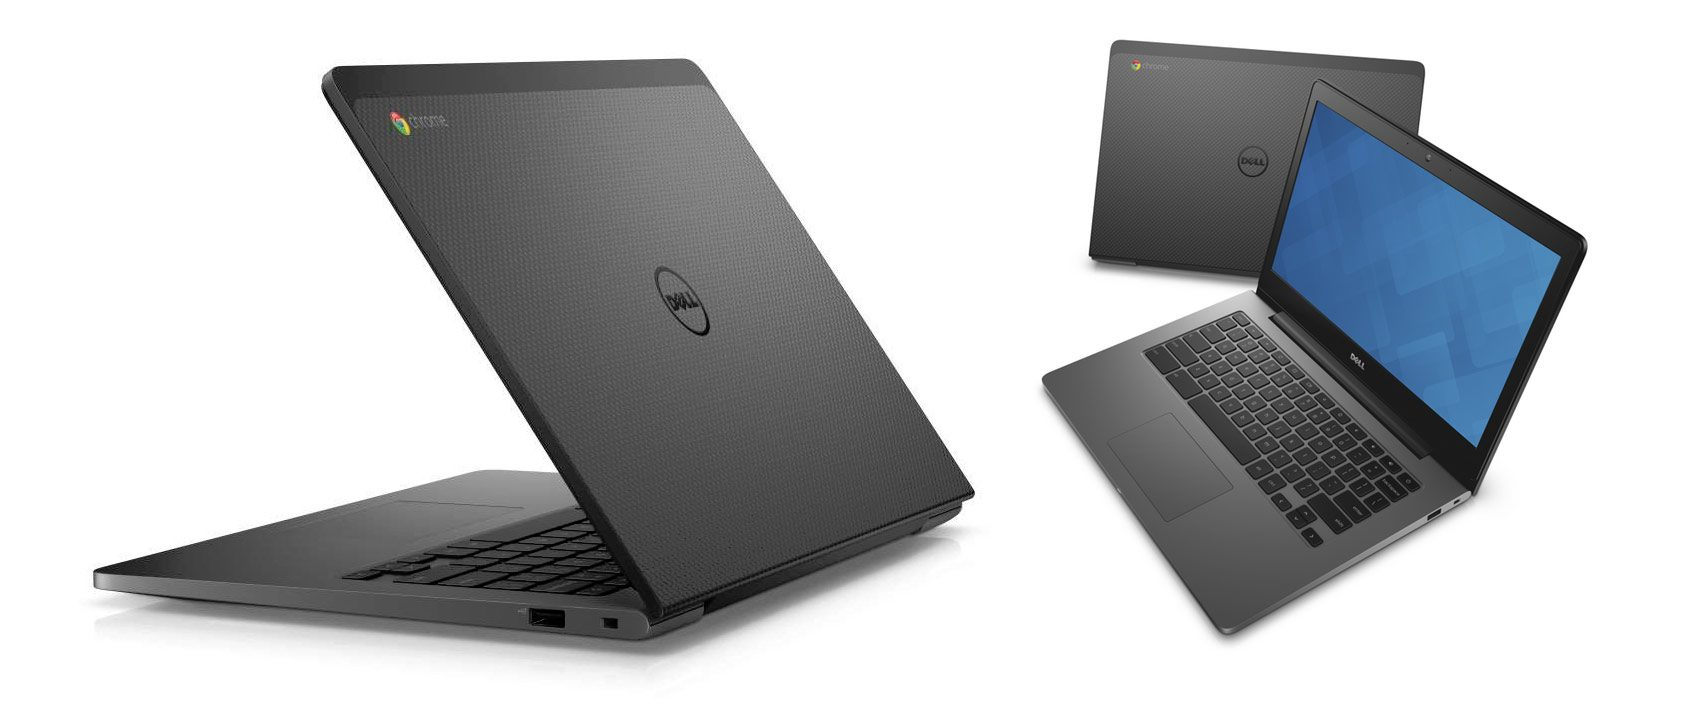 The Dell Chromebook 13 is a great notebook as well, faster, with a larger battery and a more sober design, but is not fanless